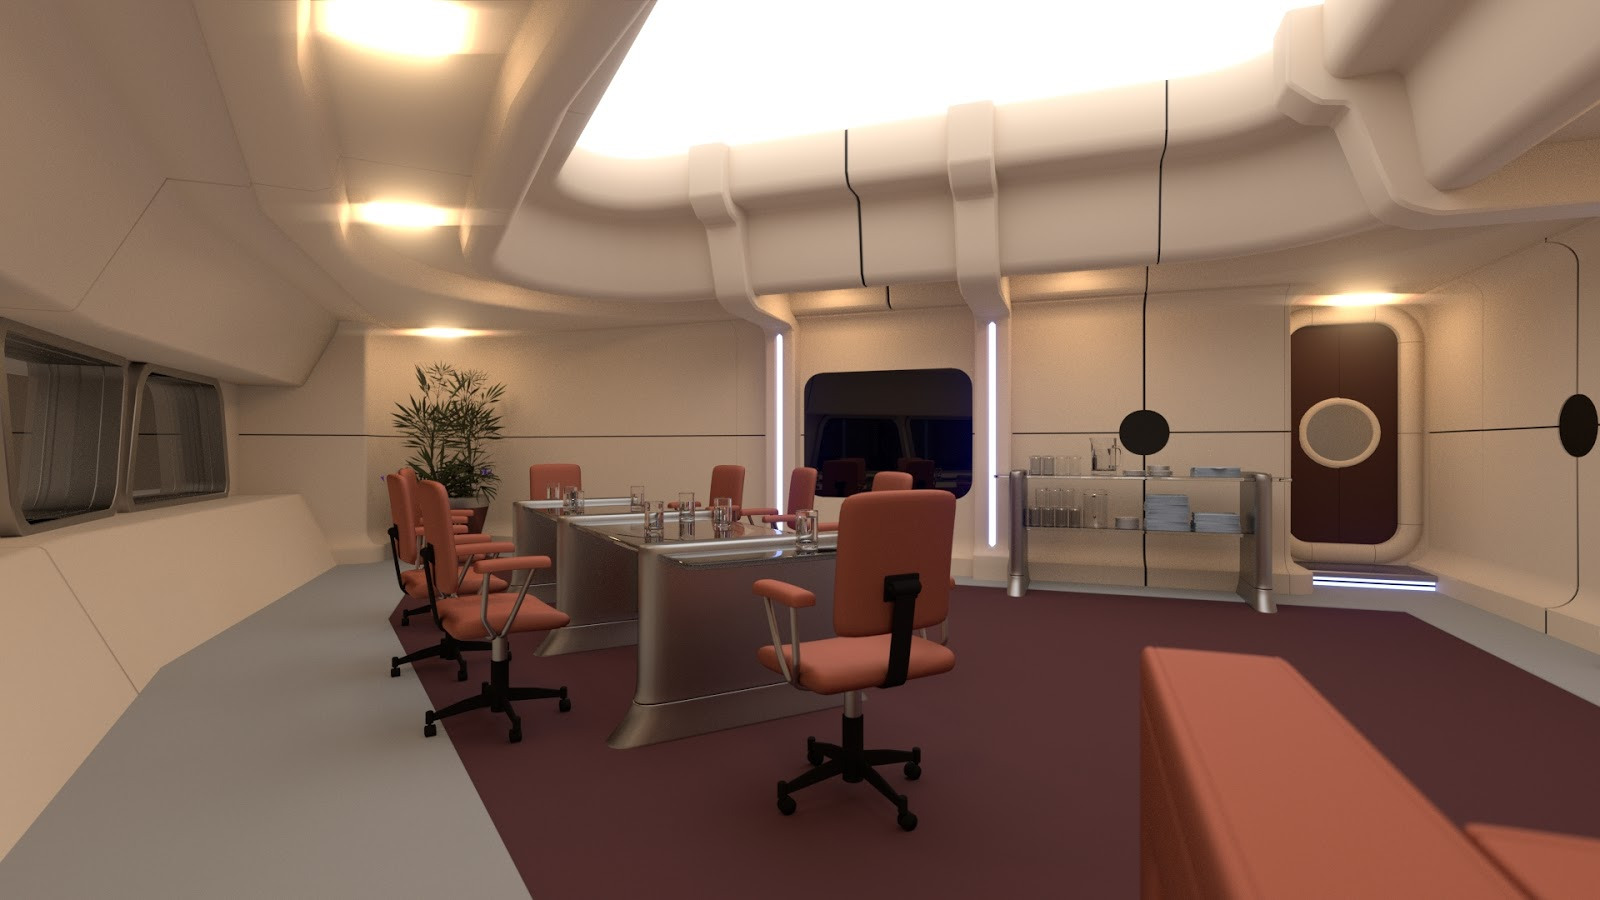 Dan brown cgi sci fi art conference room nearly done for Sci fi decor